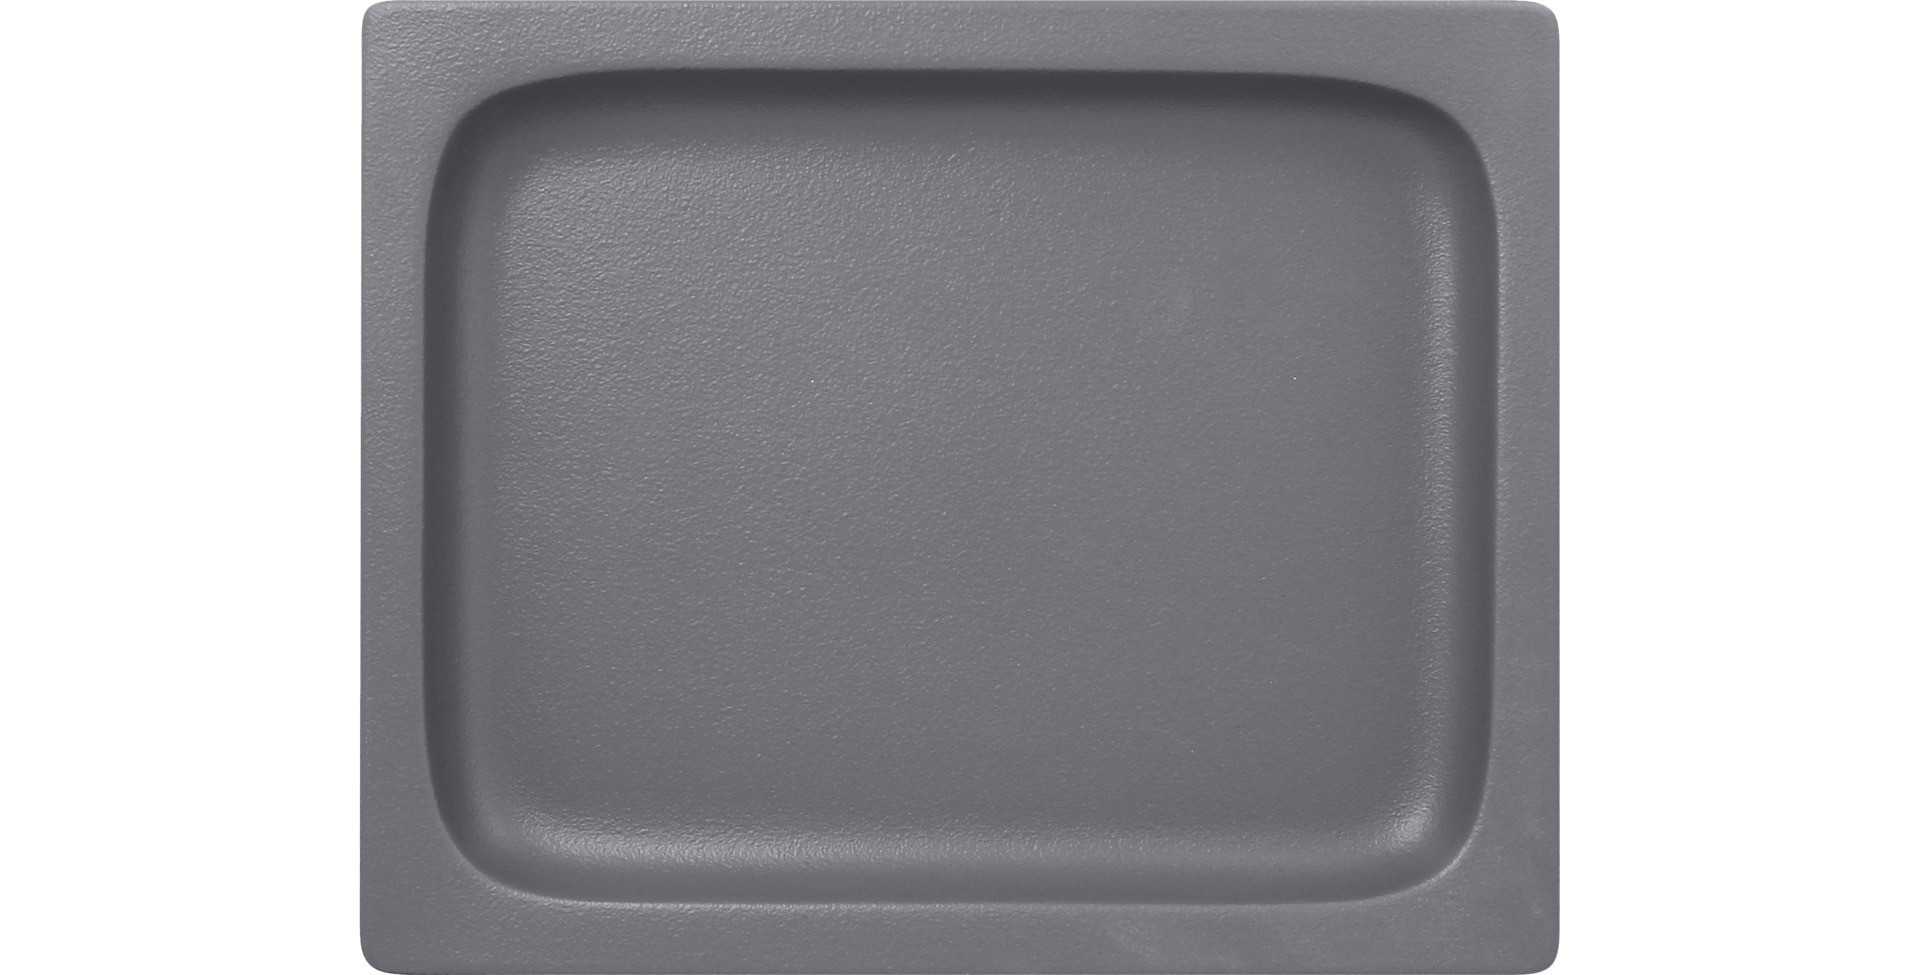 Neofusion, GN-Schale GN 1/2 flach 325 x 265 mm / 1,30 l stone